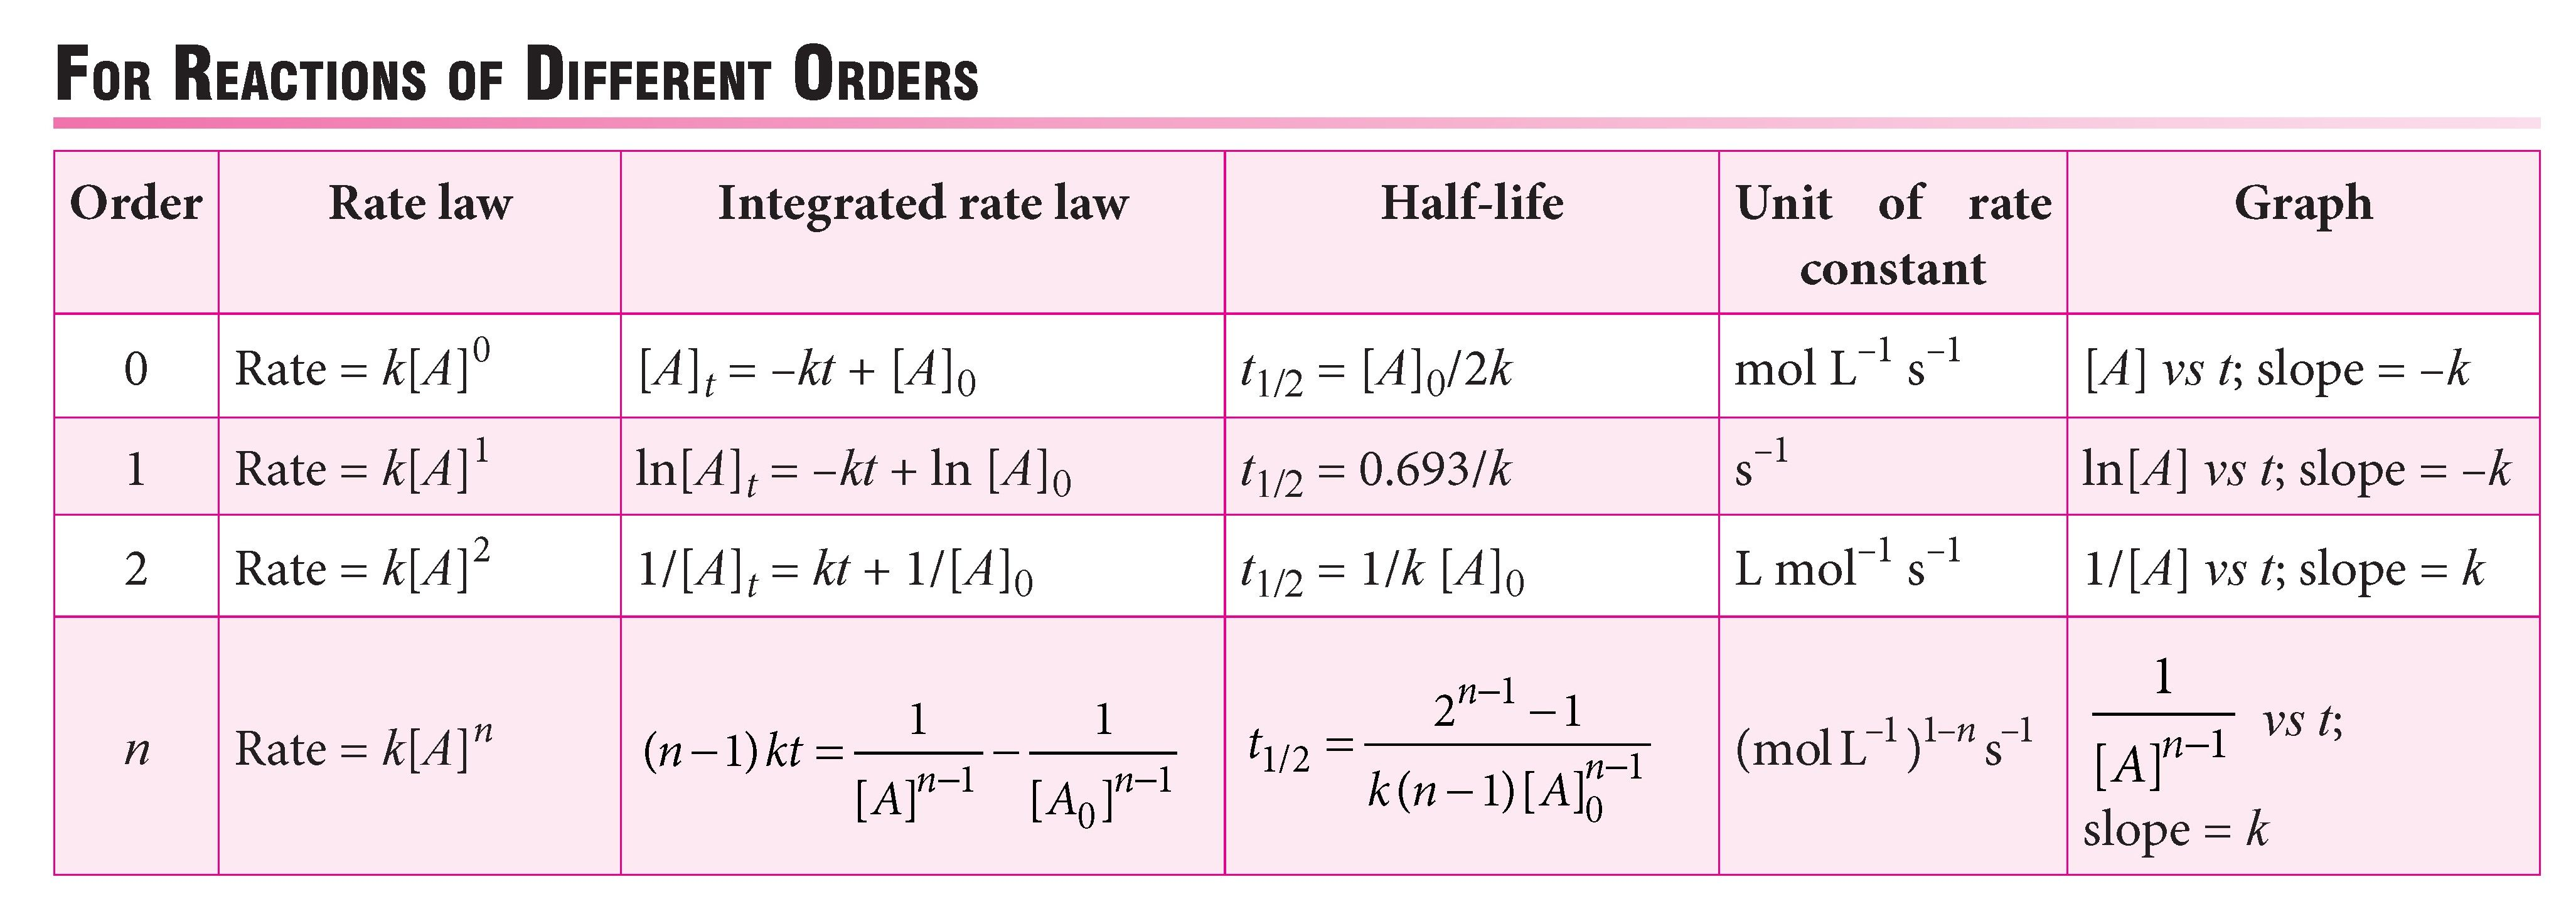 Learn Rate Law And Rate Constant For Reactions Of